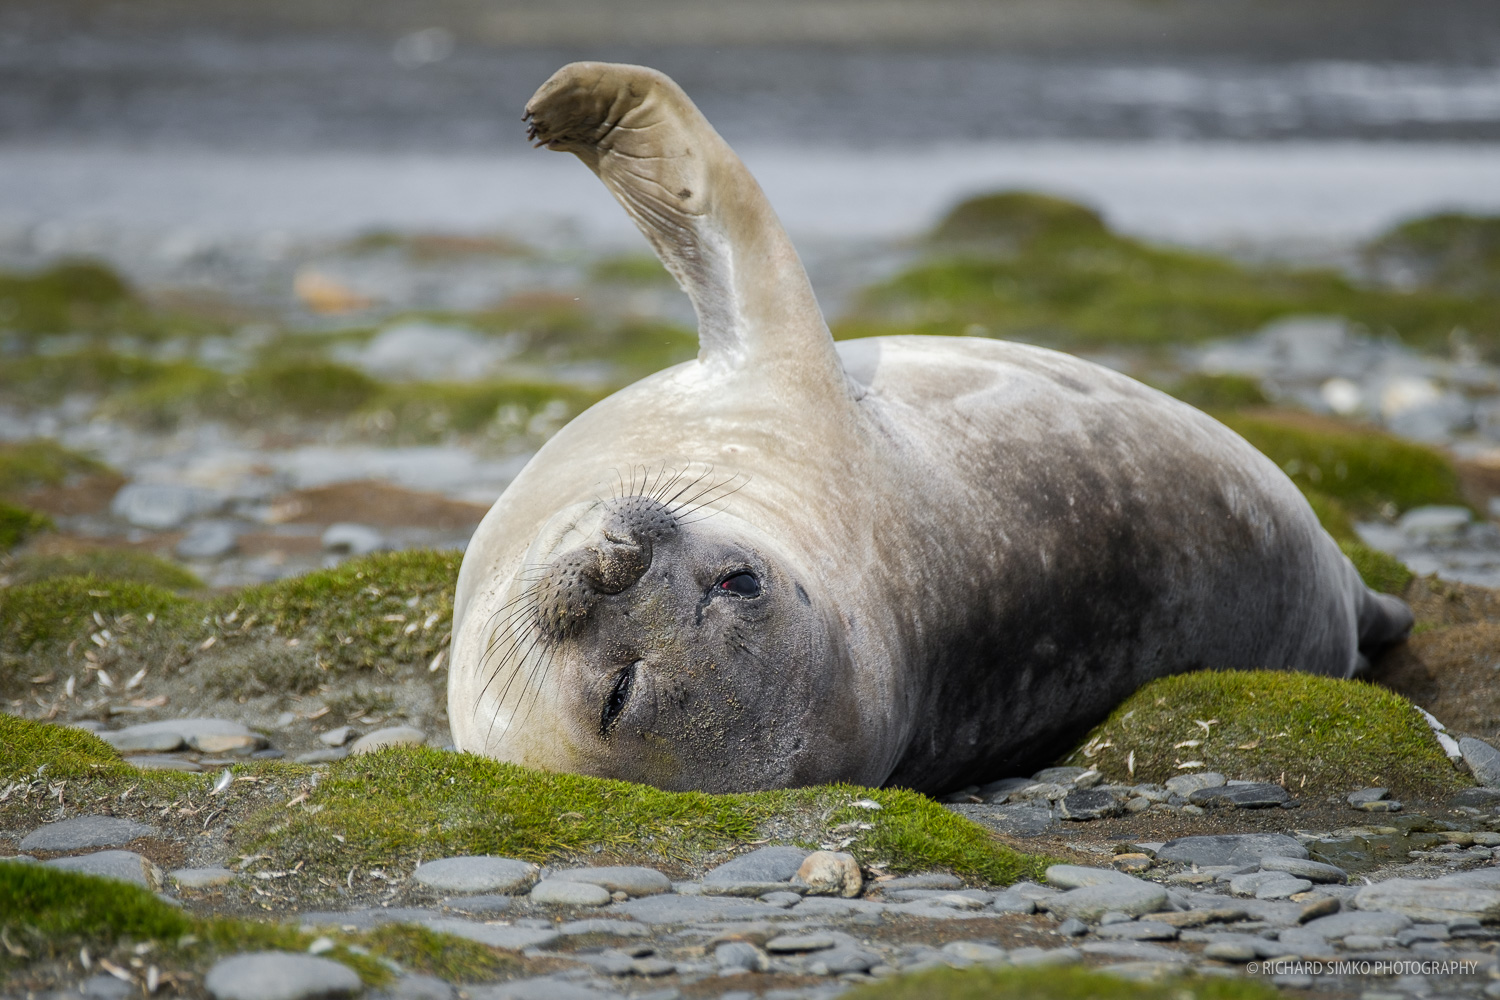 A lazy seal is sunbathing on green mossy ground at Salisbury Plane in South Georgia